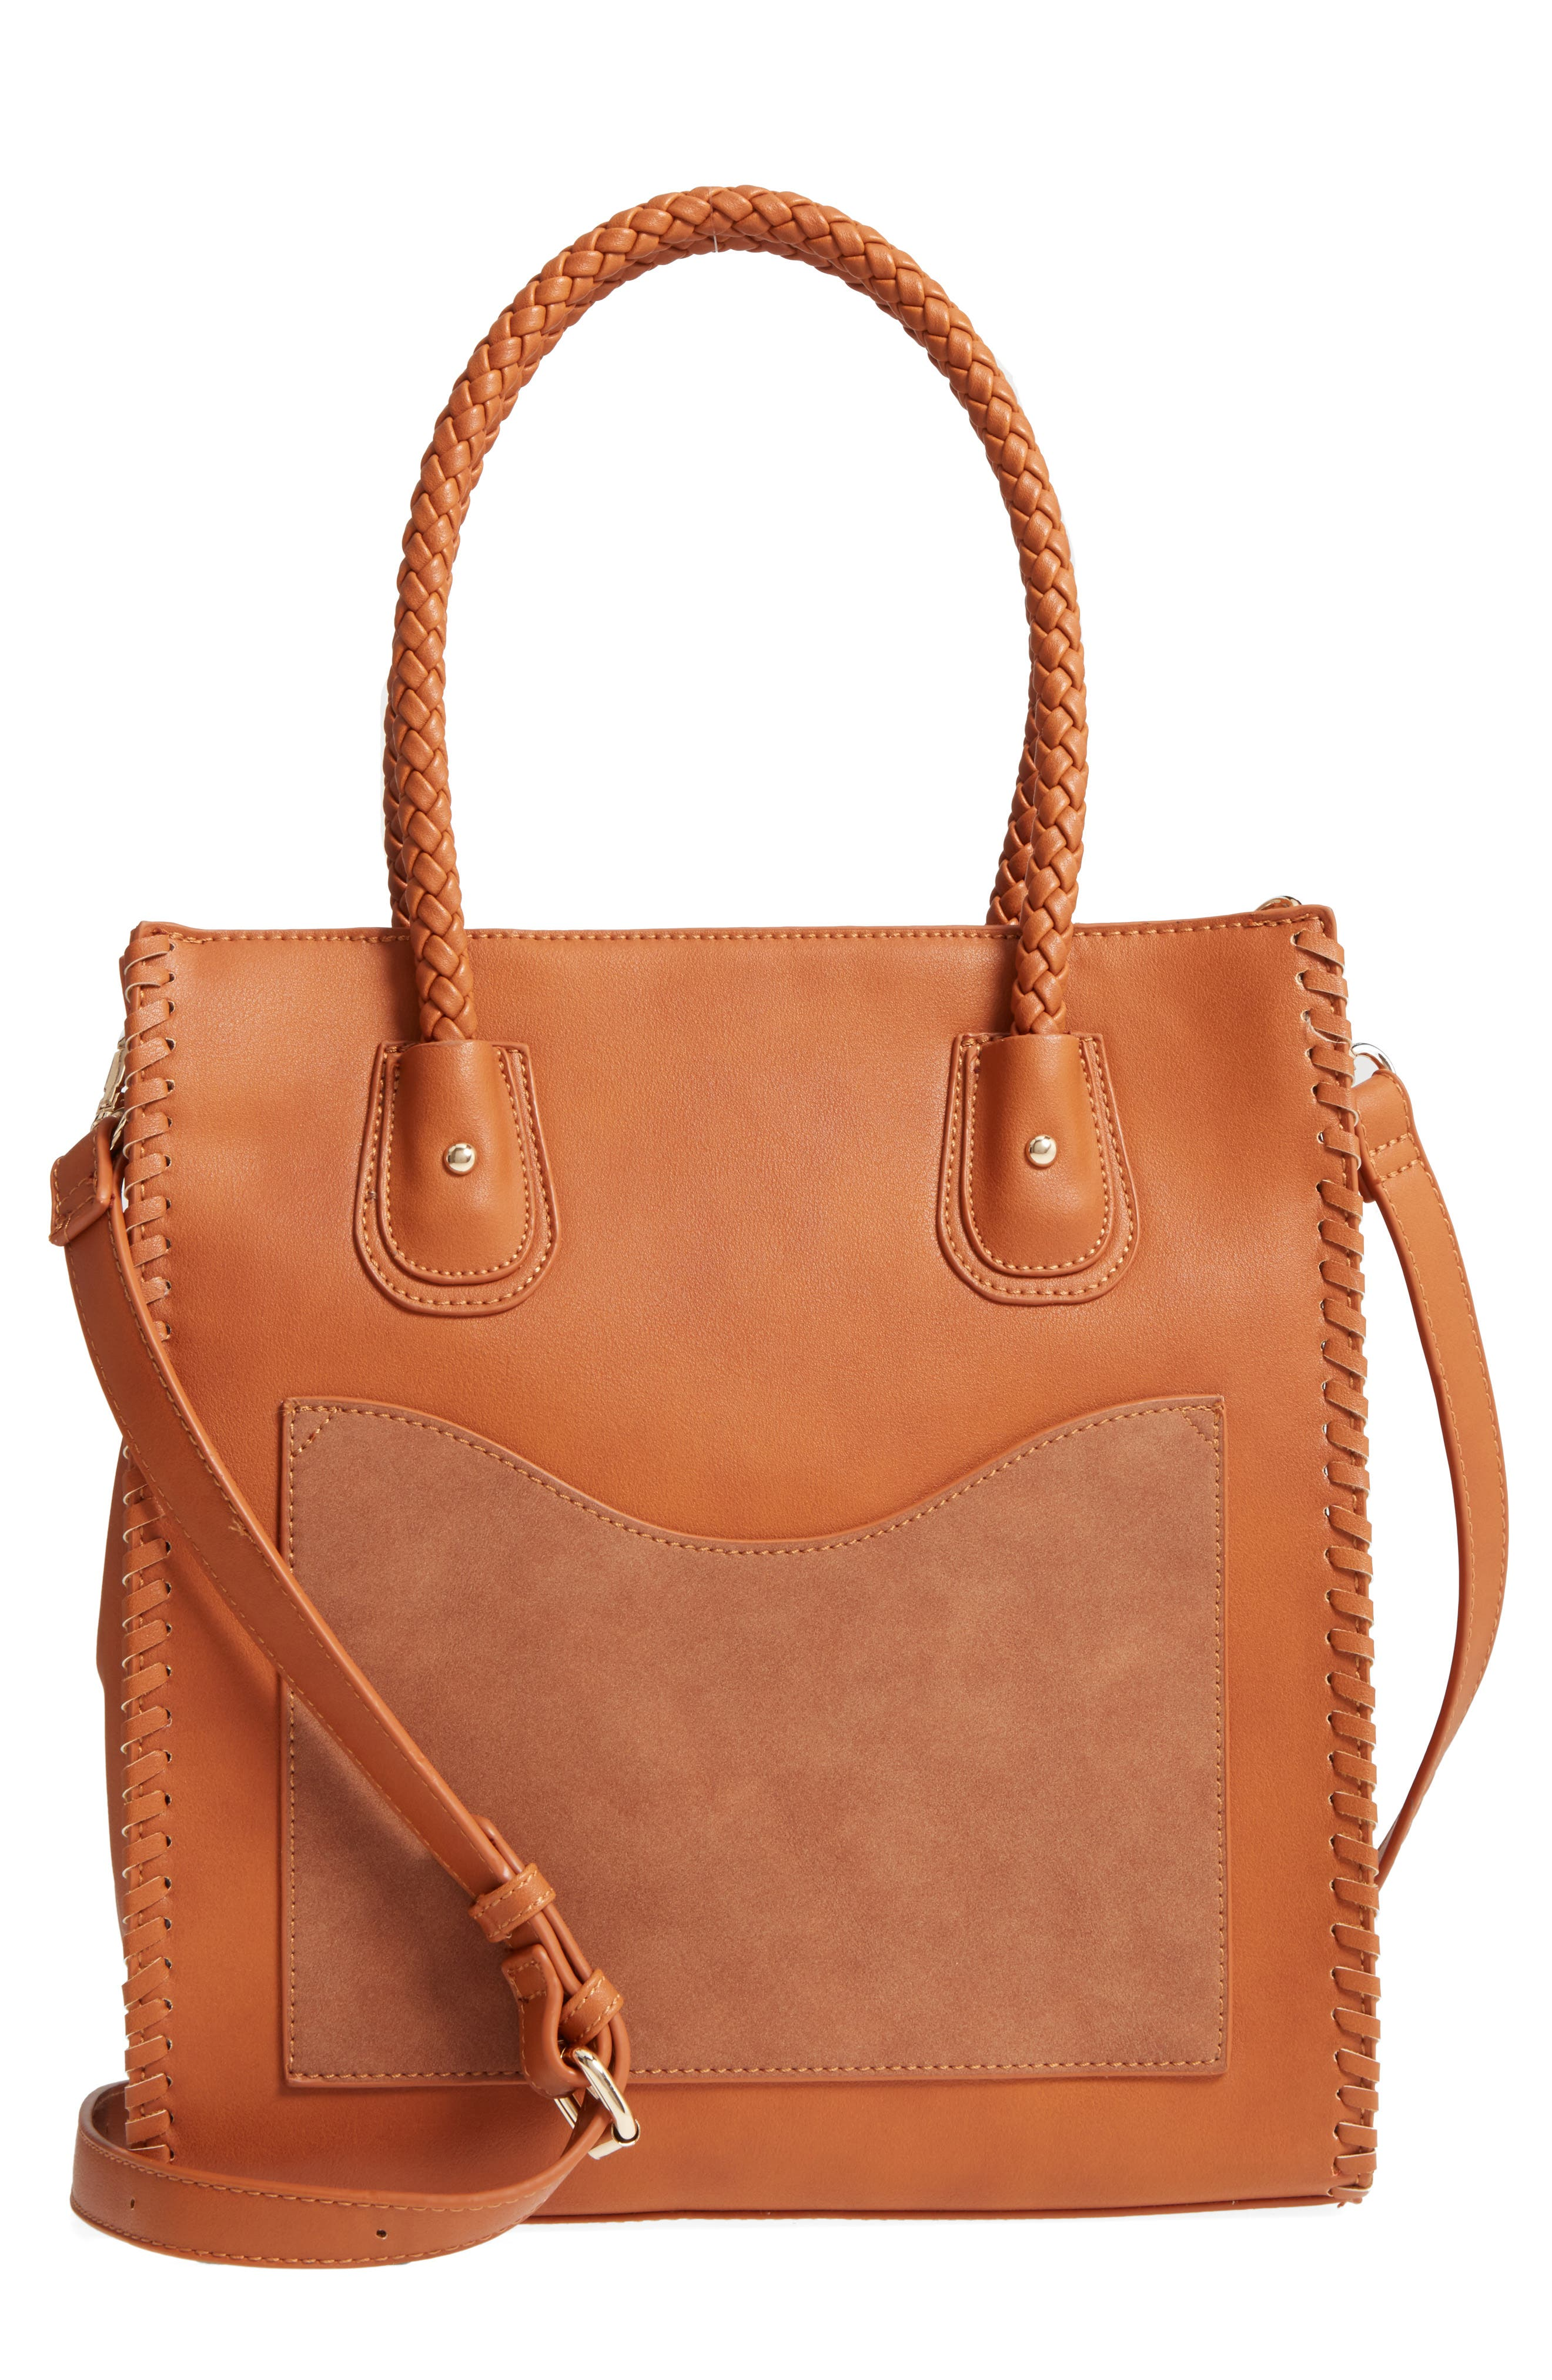 Main Image - Emperia Whipstitch Faux Leather Tote